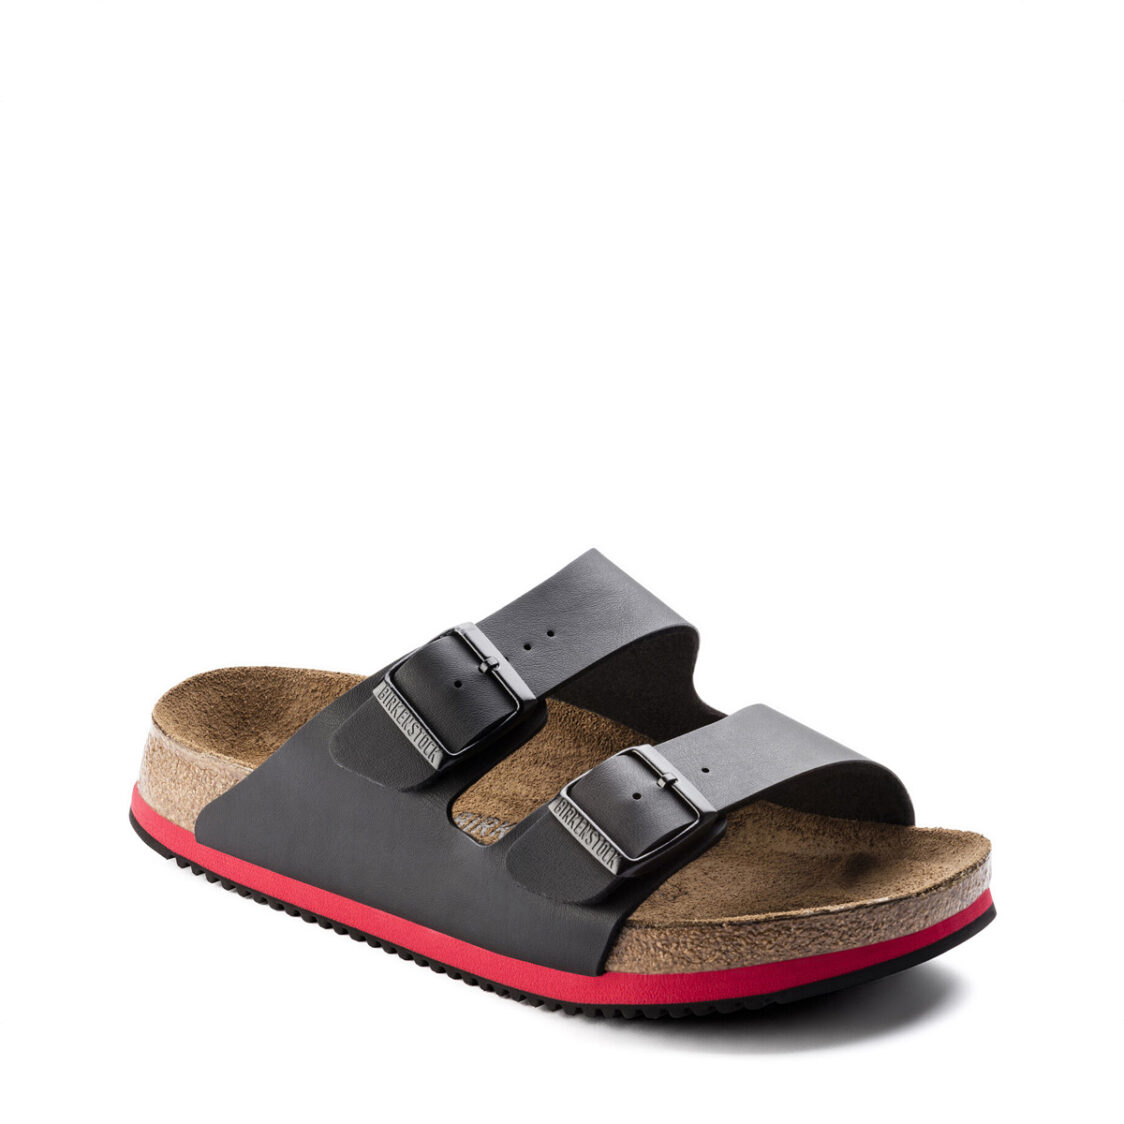 Birkenstock Arizona Super Grip Birko-Flor Unisex Regular Width Sandals Black